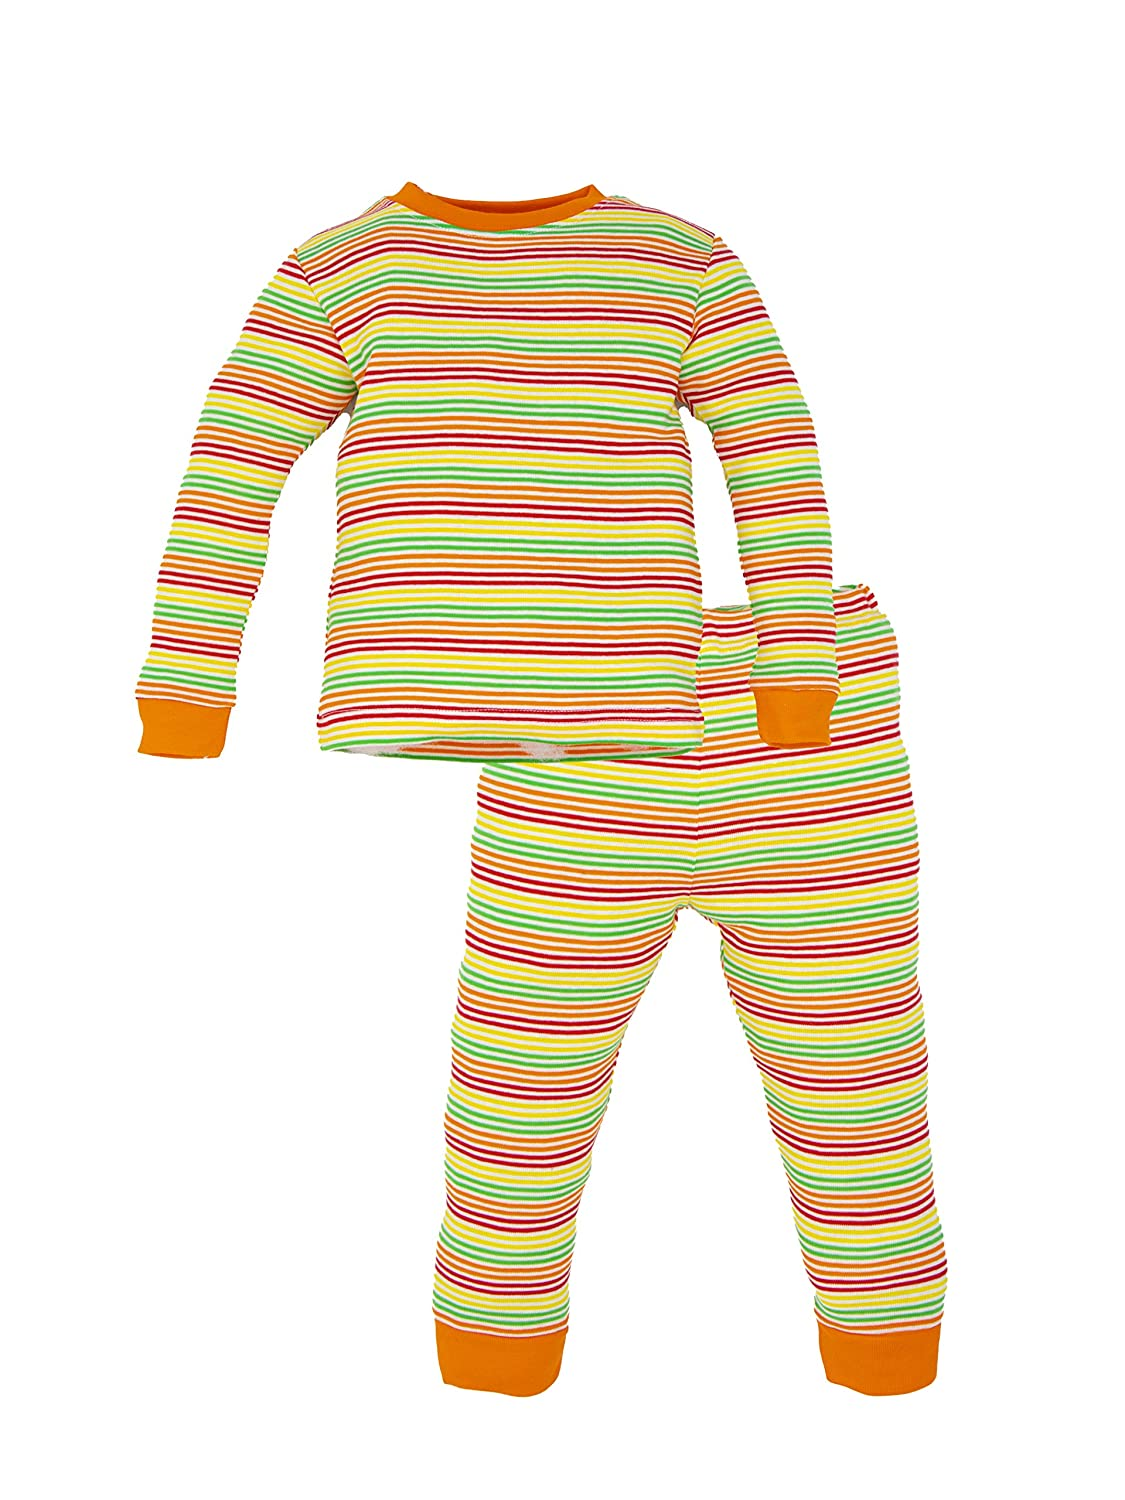 Under The Nile Organic Cotton Toddler Multicolor Stripe Long Johns, 12 Months